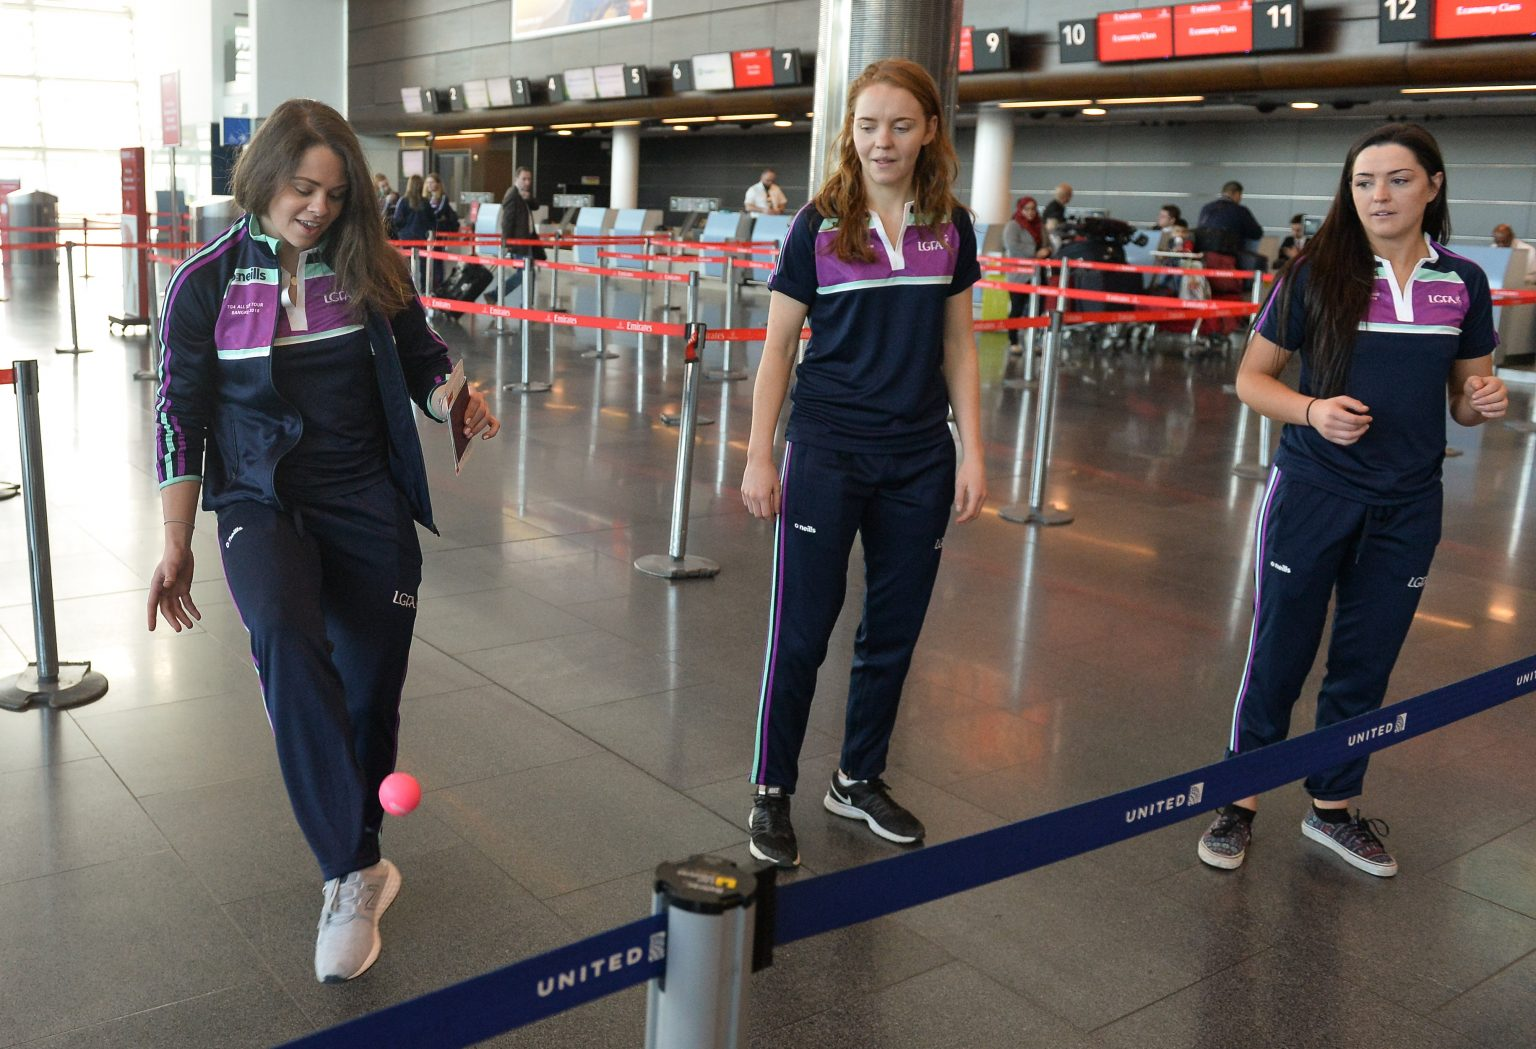 Dublin players, from left, Noelle Healy, Ciara Trant and Sinéad Goldrick playing keepie uppie ahead of the TG4 Ladies Football All-Star Tour departure to Bangkok at Dublin Airport, Dublin. Photo by Piaras Ó Mídheach/Sportsfile